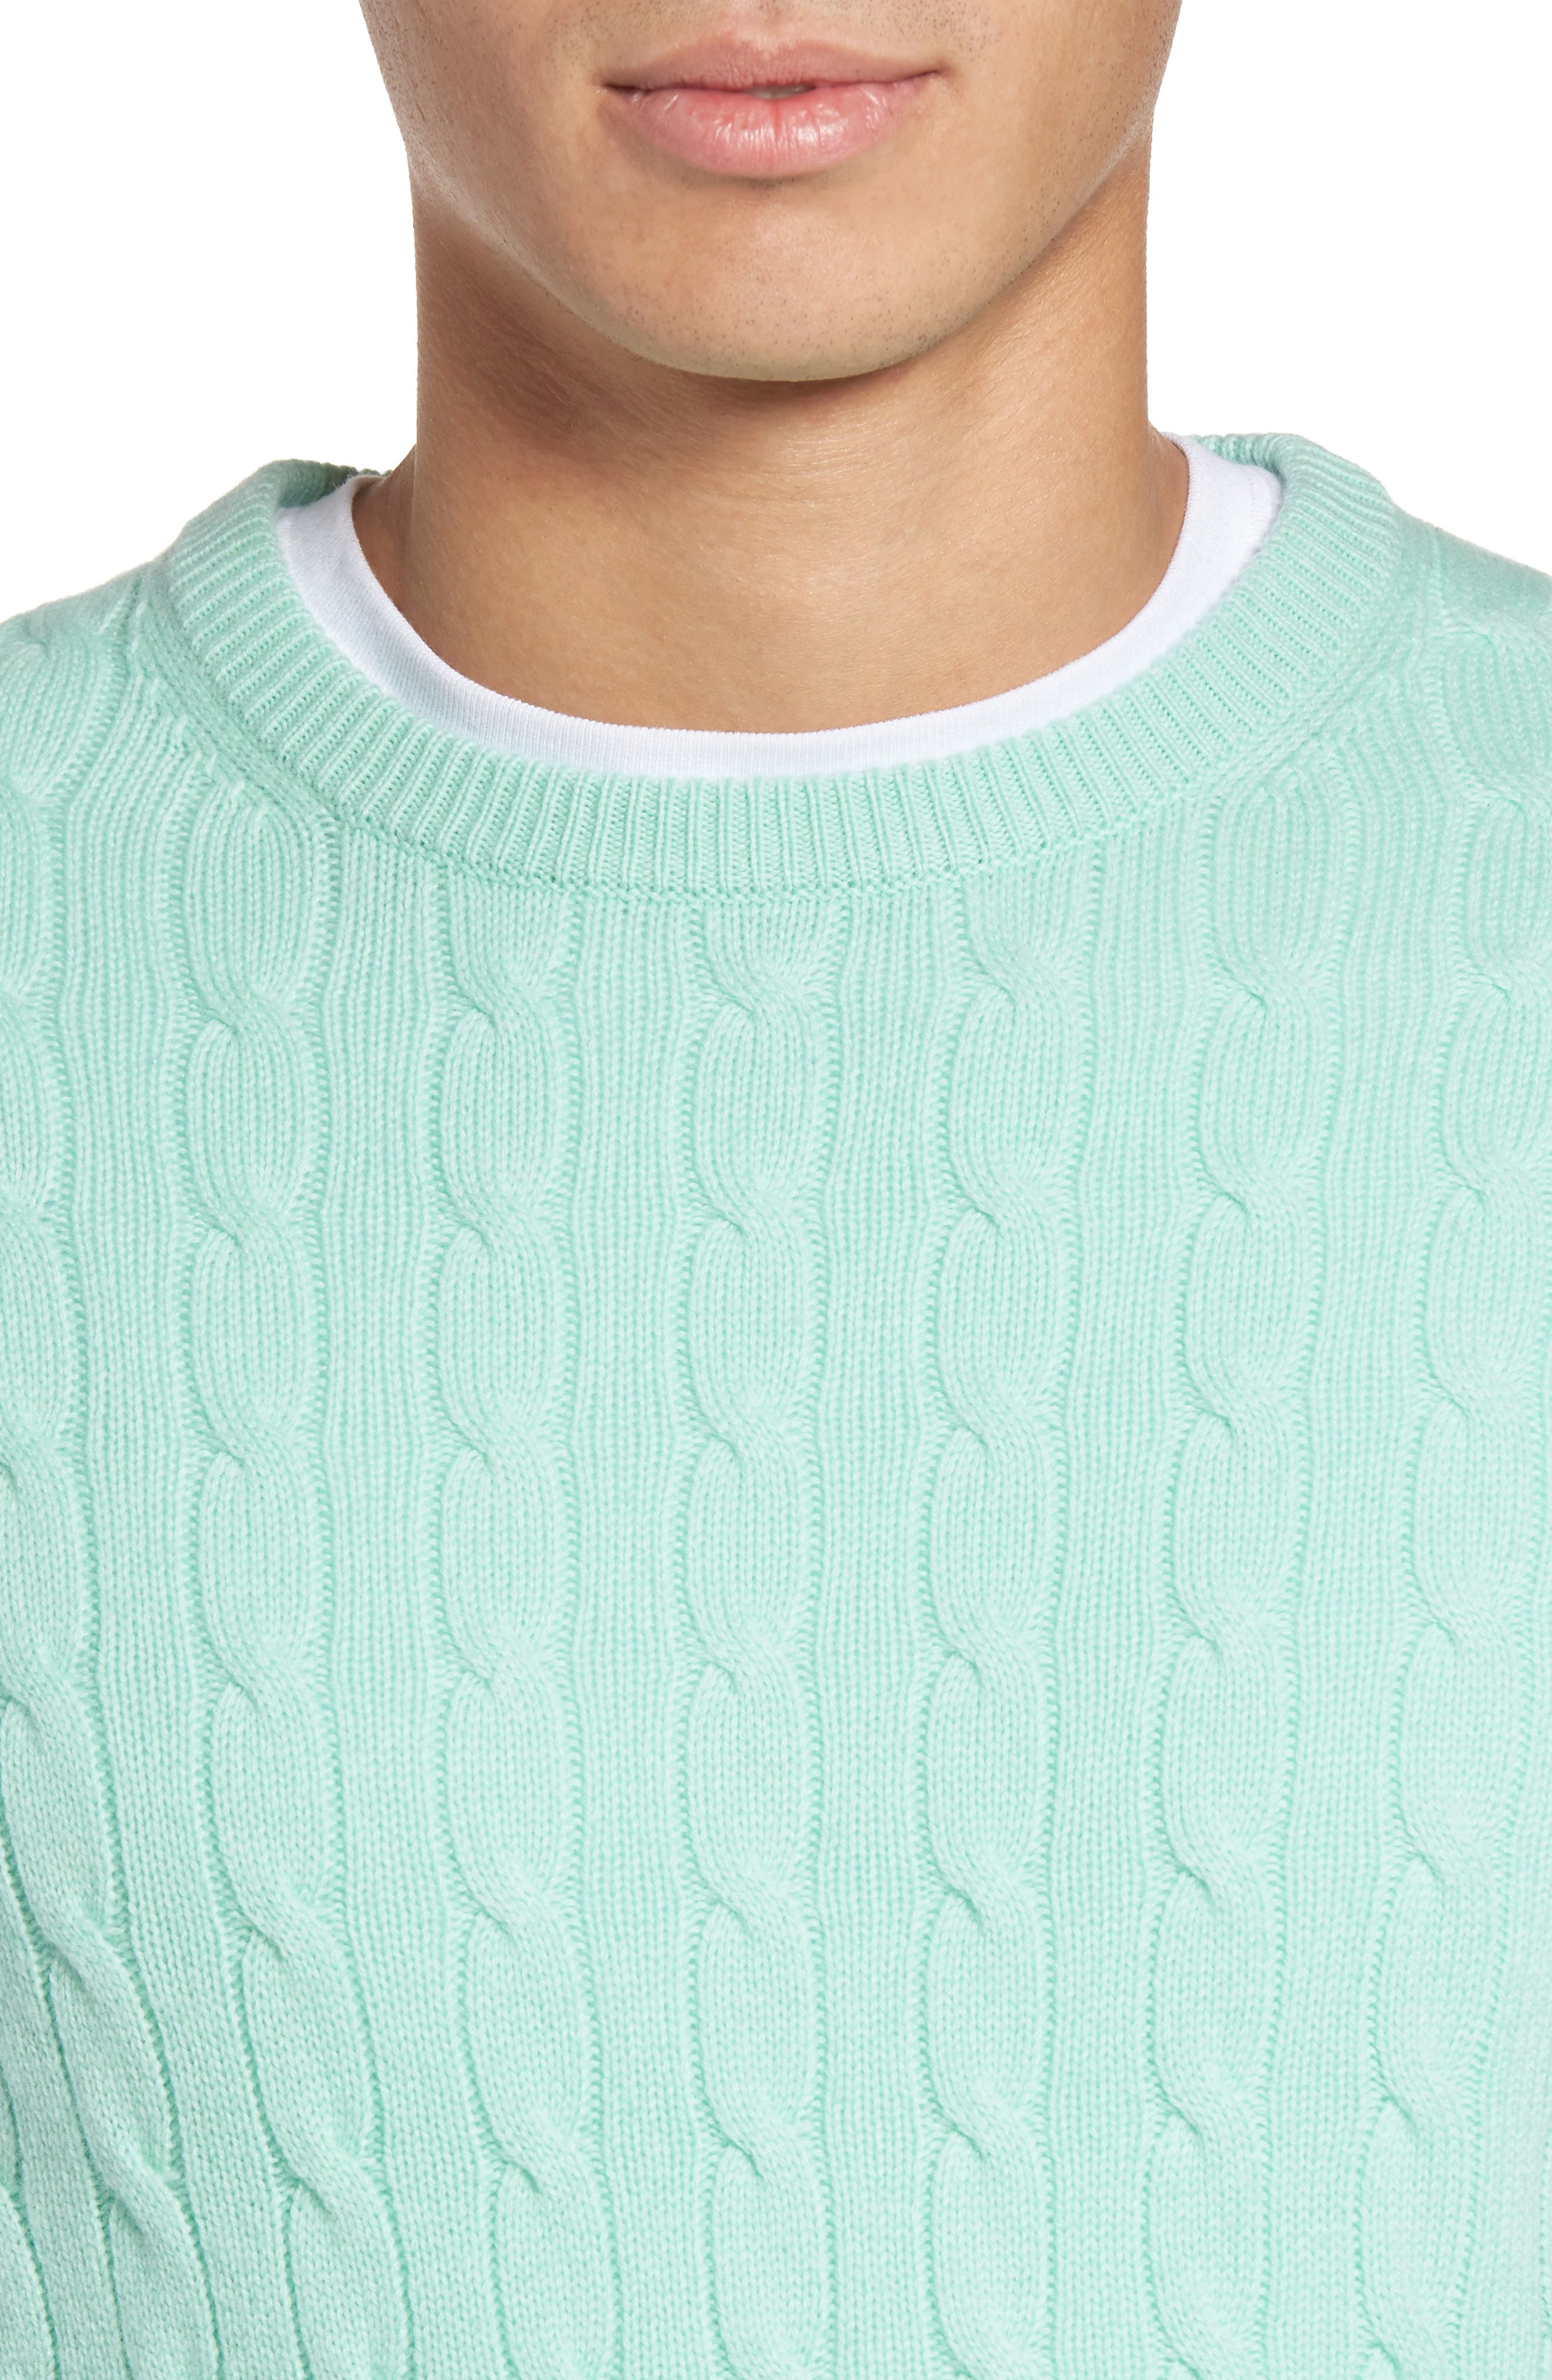 Wool & Cashmere Cable Knit Sweater,                             Alternate thumbnail 4, color,                             301